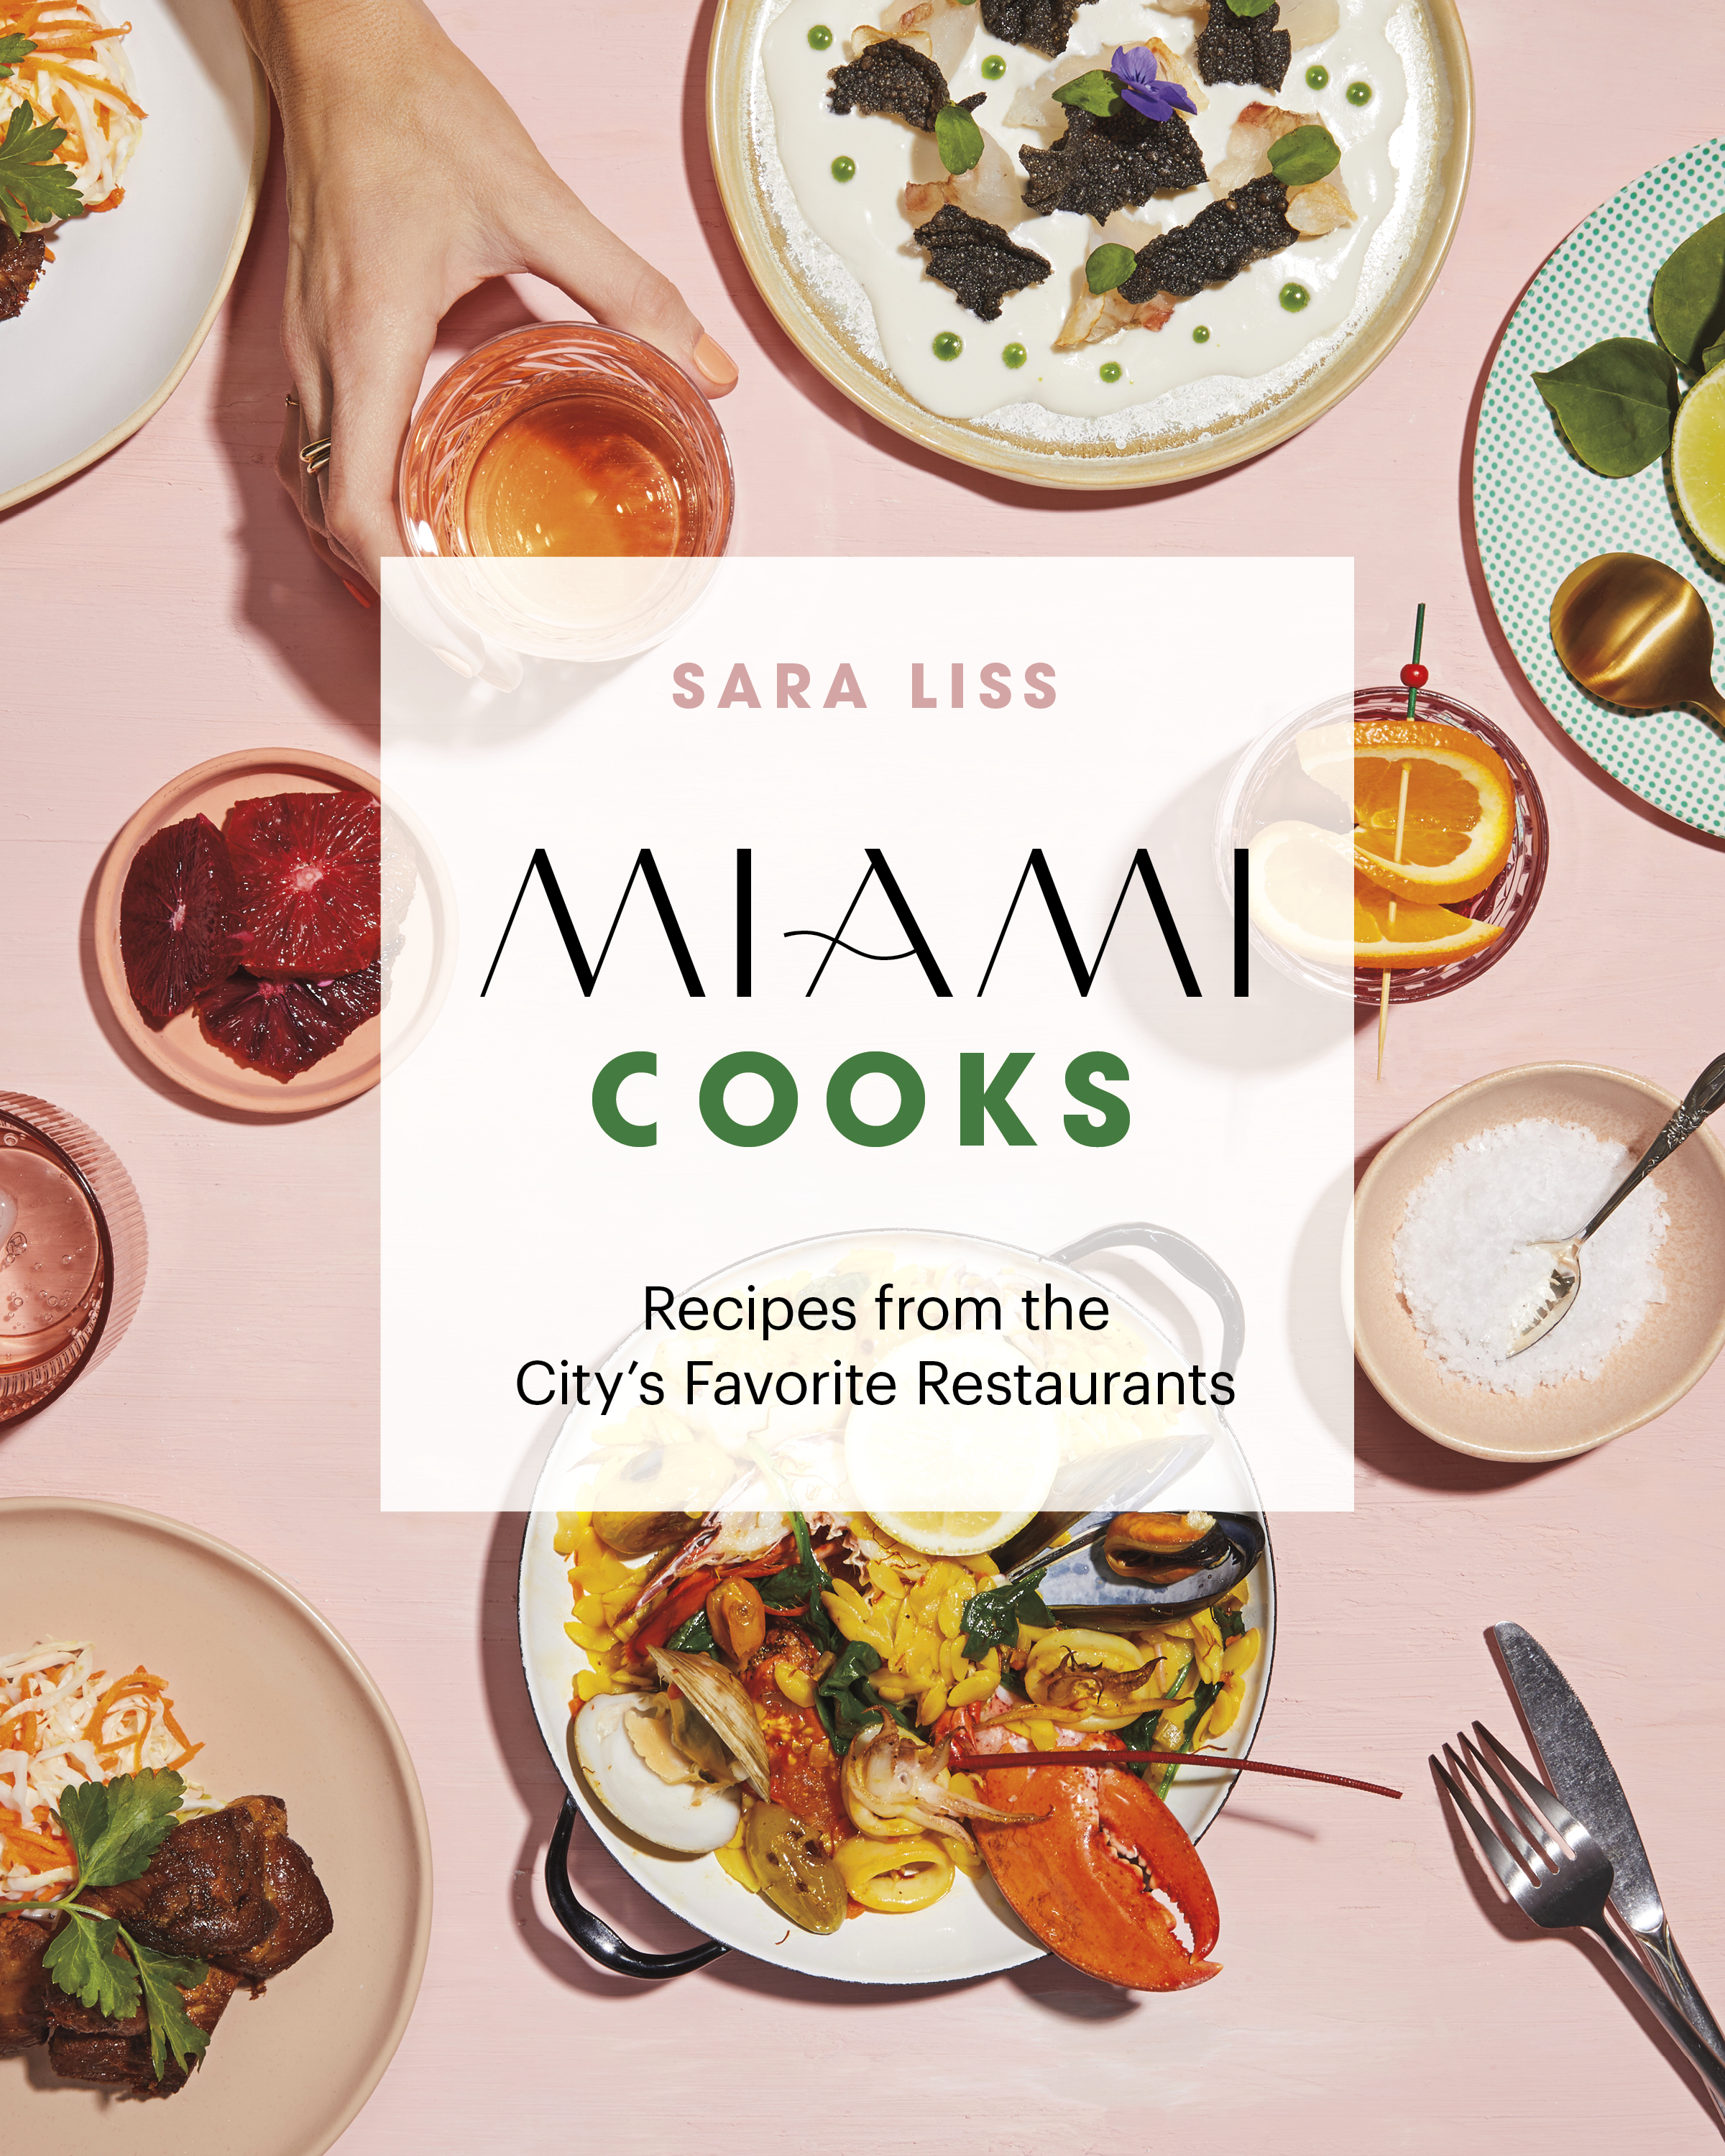 Miami Cooks: Recipes From the City's Favorite Restaurants by Sara Liss